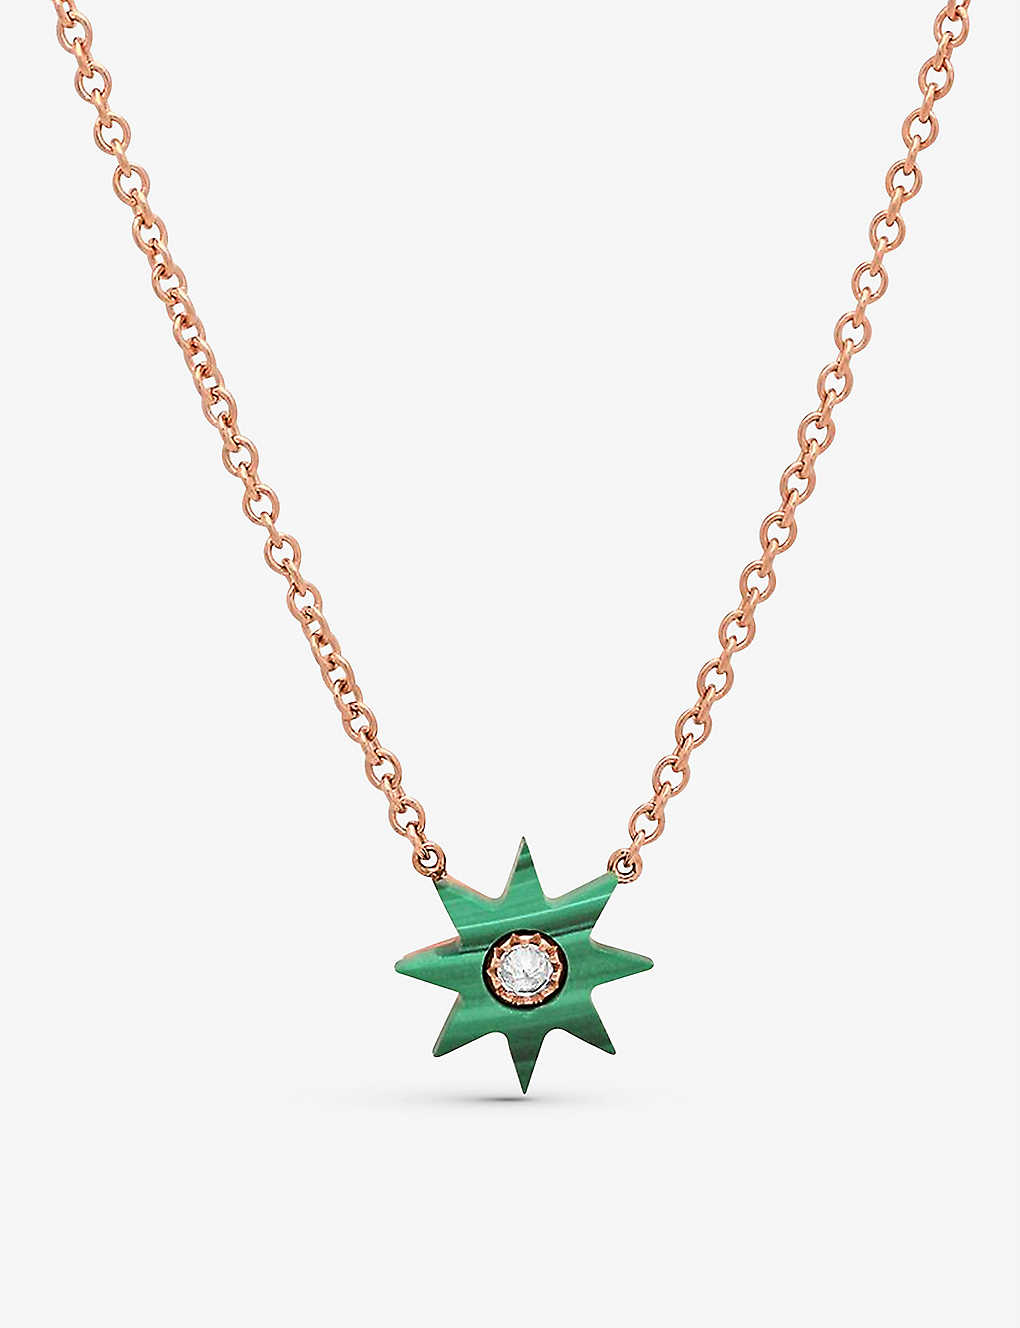 THE ALKEMISTRY: Colette Galaxia 18ct rose-gold, malachite and diamond necklace